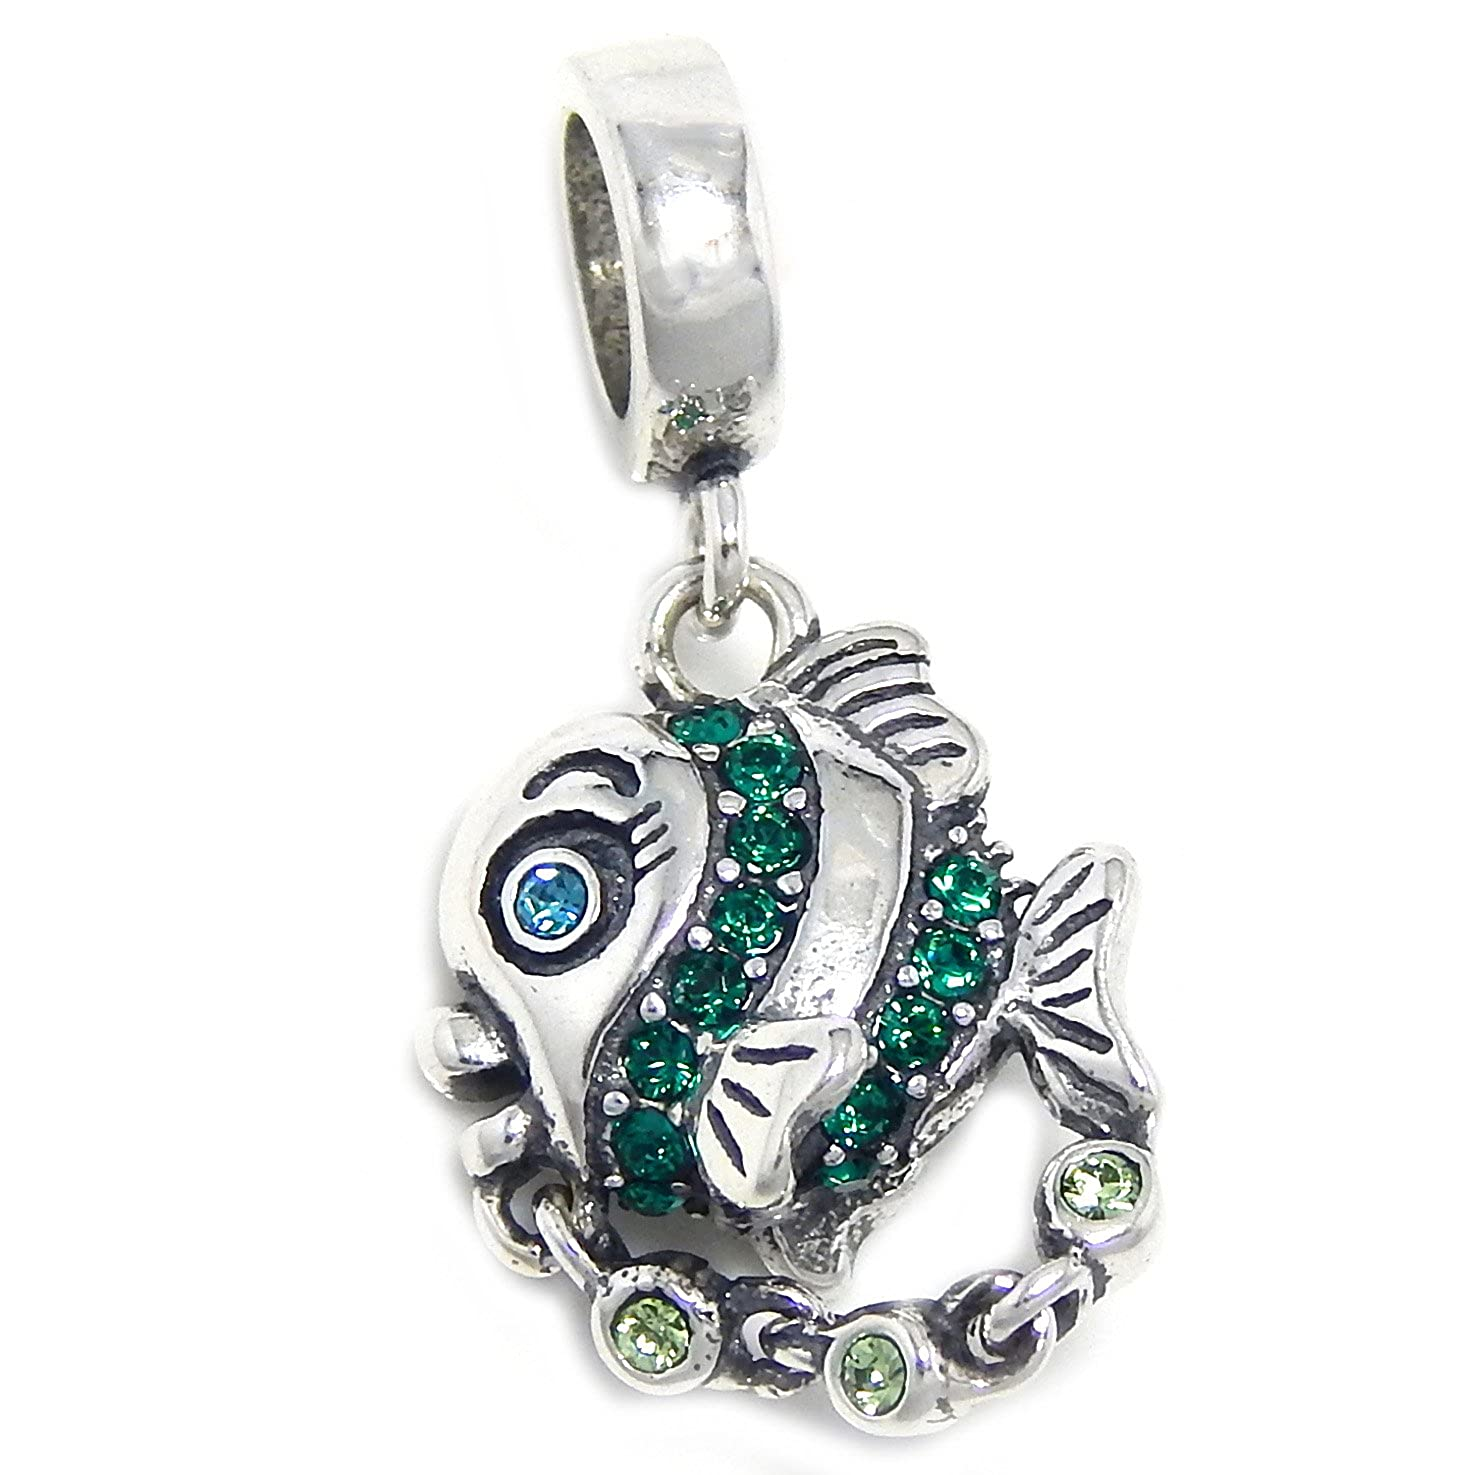 Solid 925 Sterling Silver Dangling Fish w// Green /& Blue CZ Charm Bead 373 for European Snake Chain Bracelets